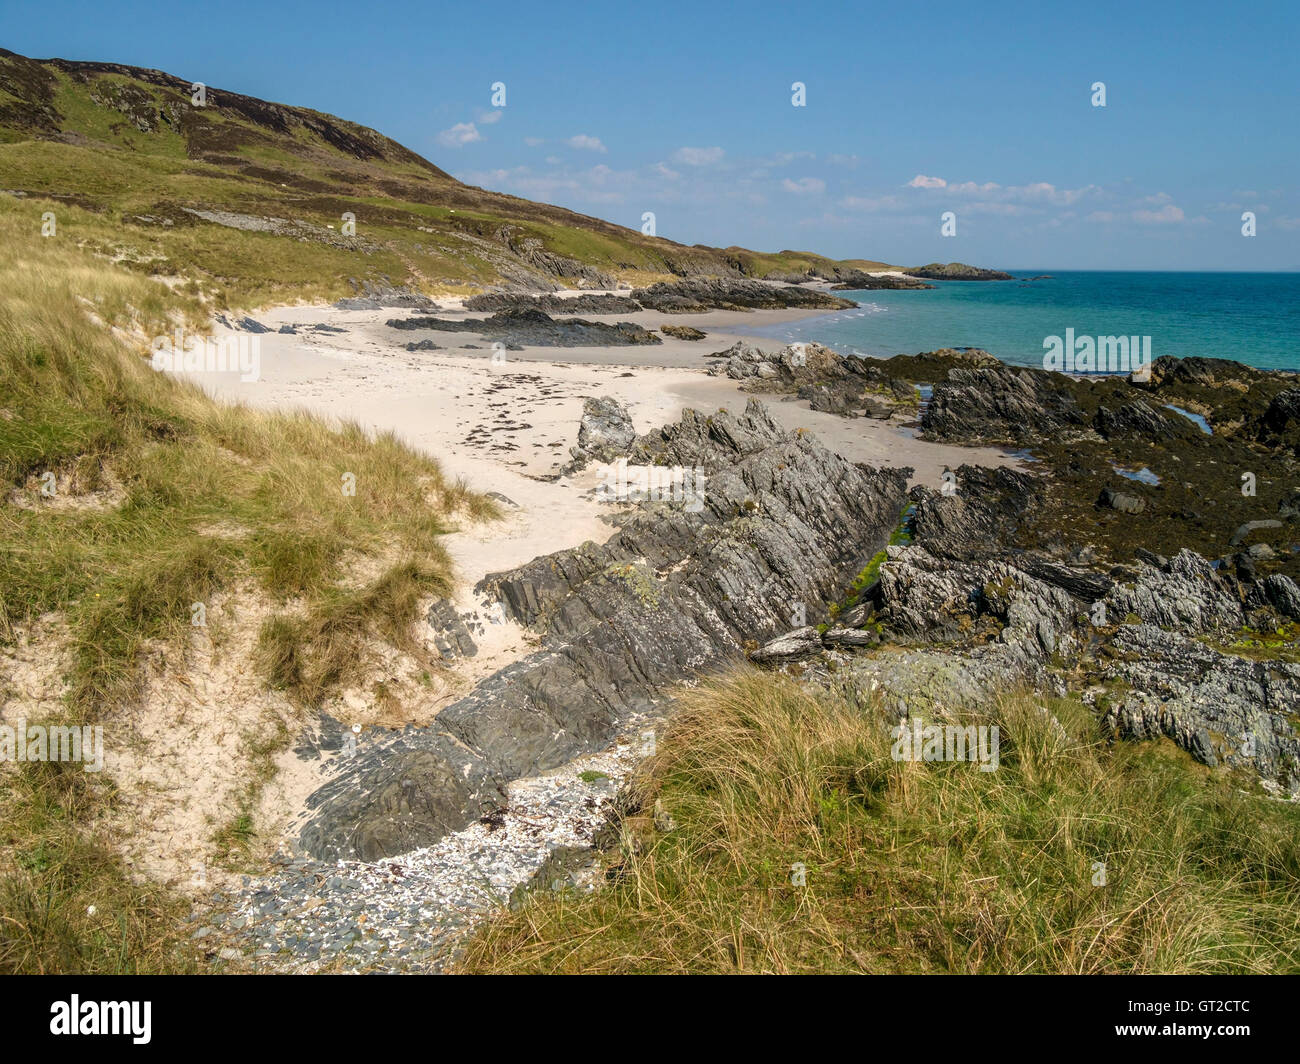 Glorious deserted sandy beaches at Port a Chapuill on the remote Hebridean Island of Colonsay, Scotland, UK. - Stock Image